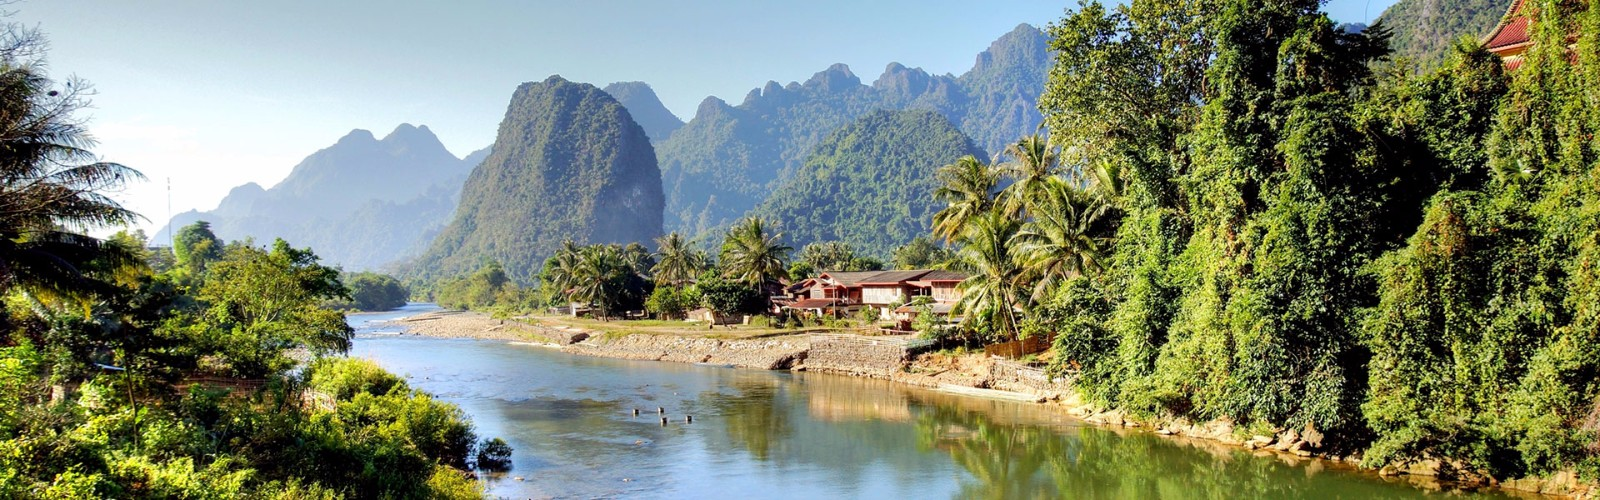 Highlights of Laos tour